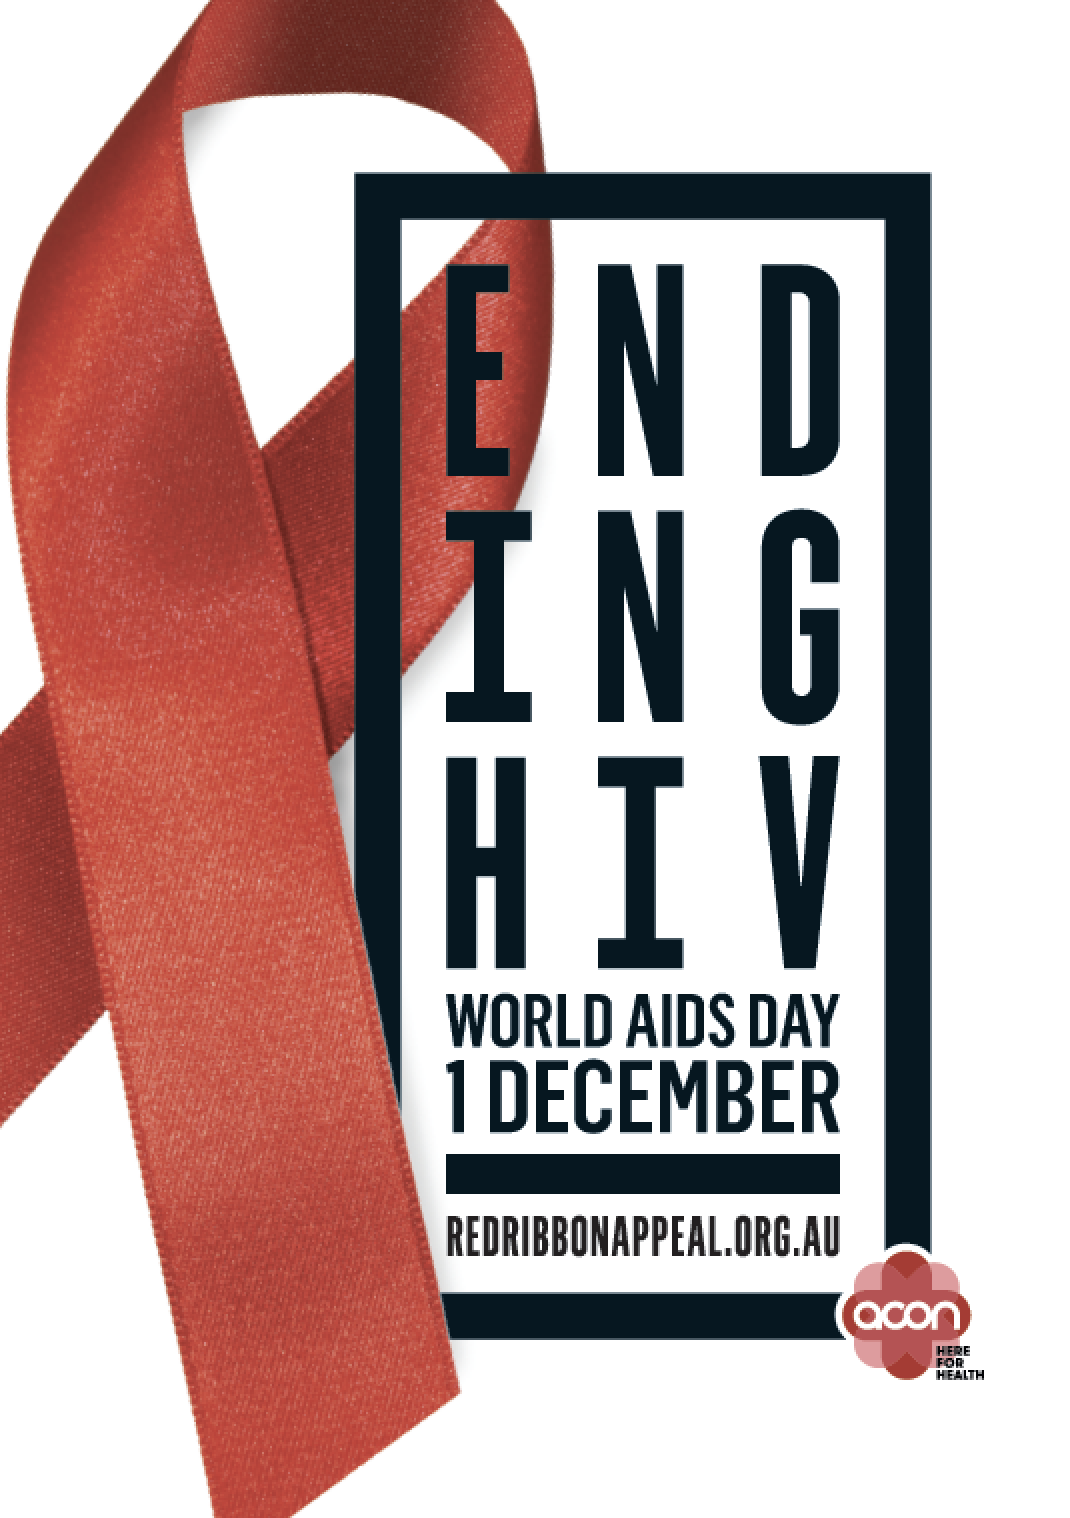 Red Friday - Image 'Ending HIV' (JPG)